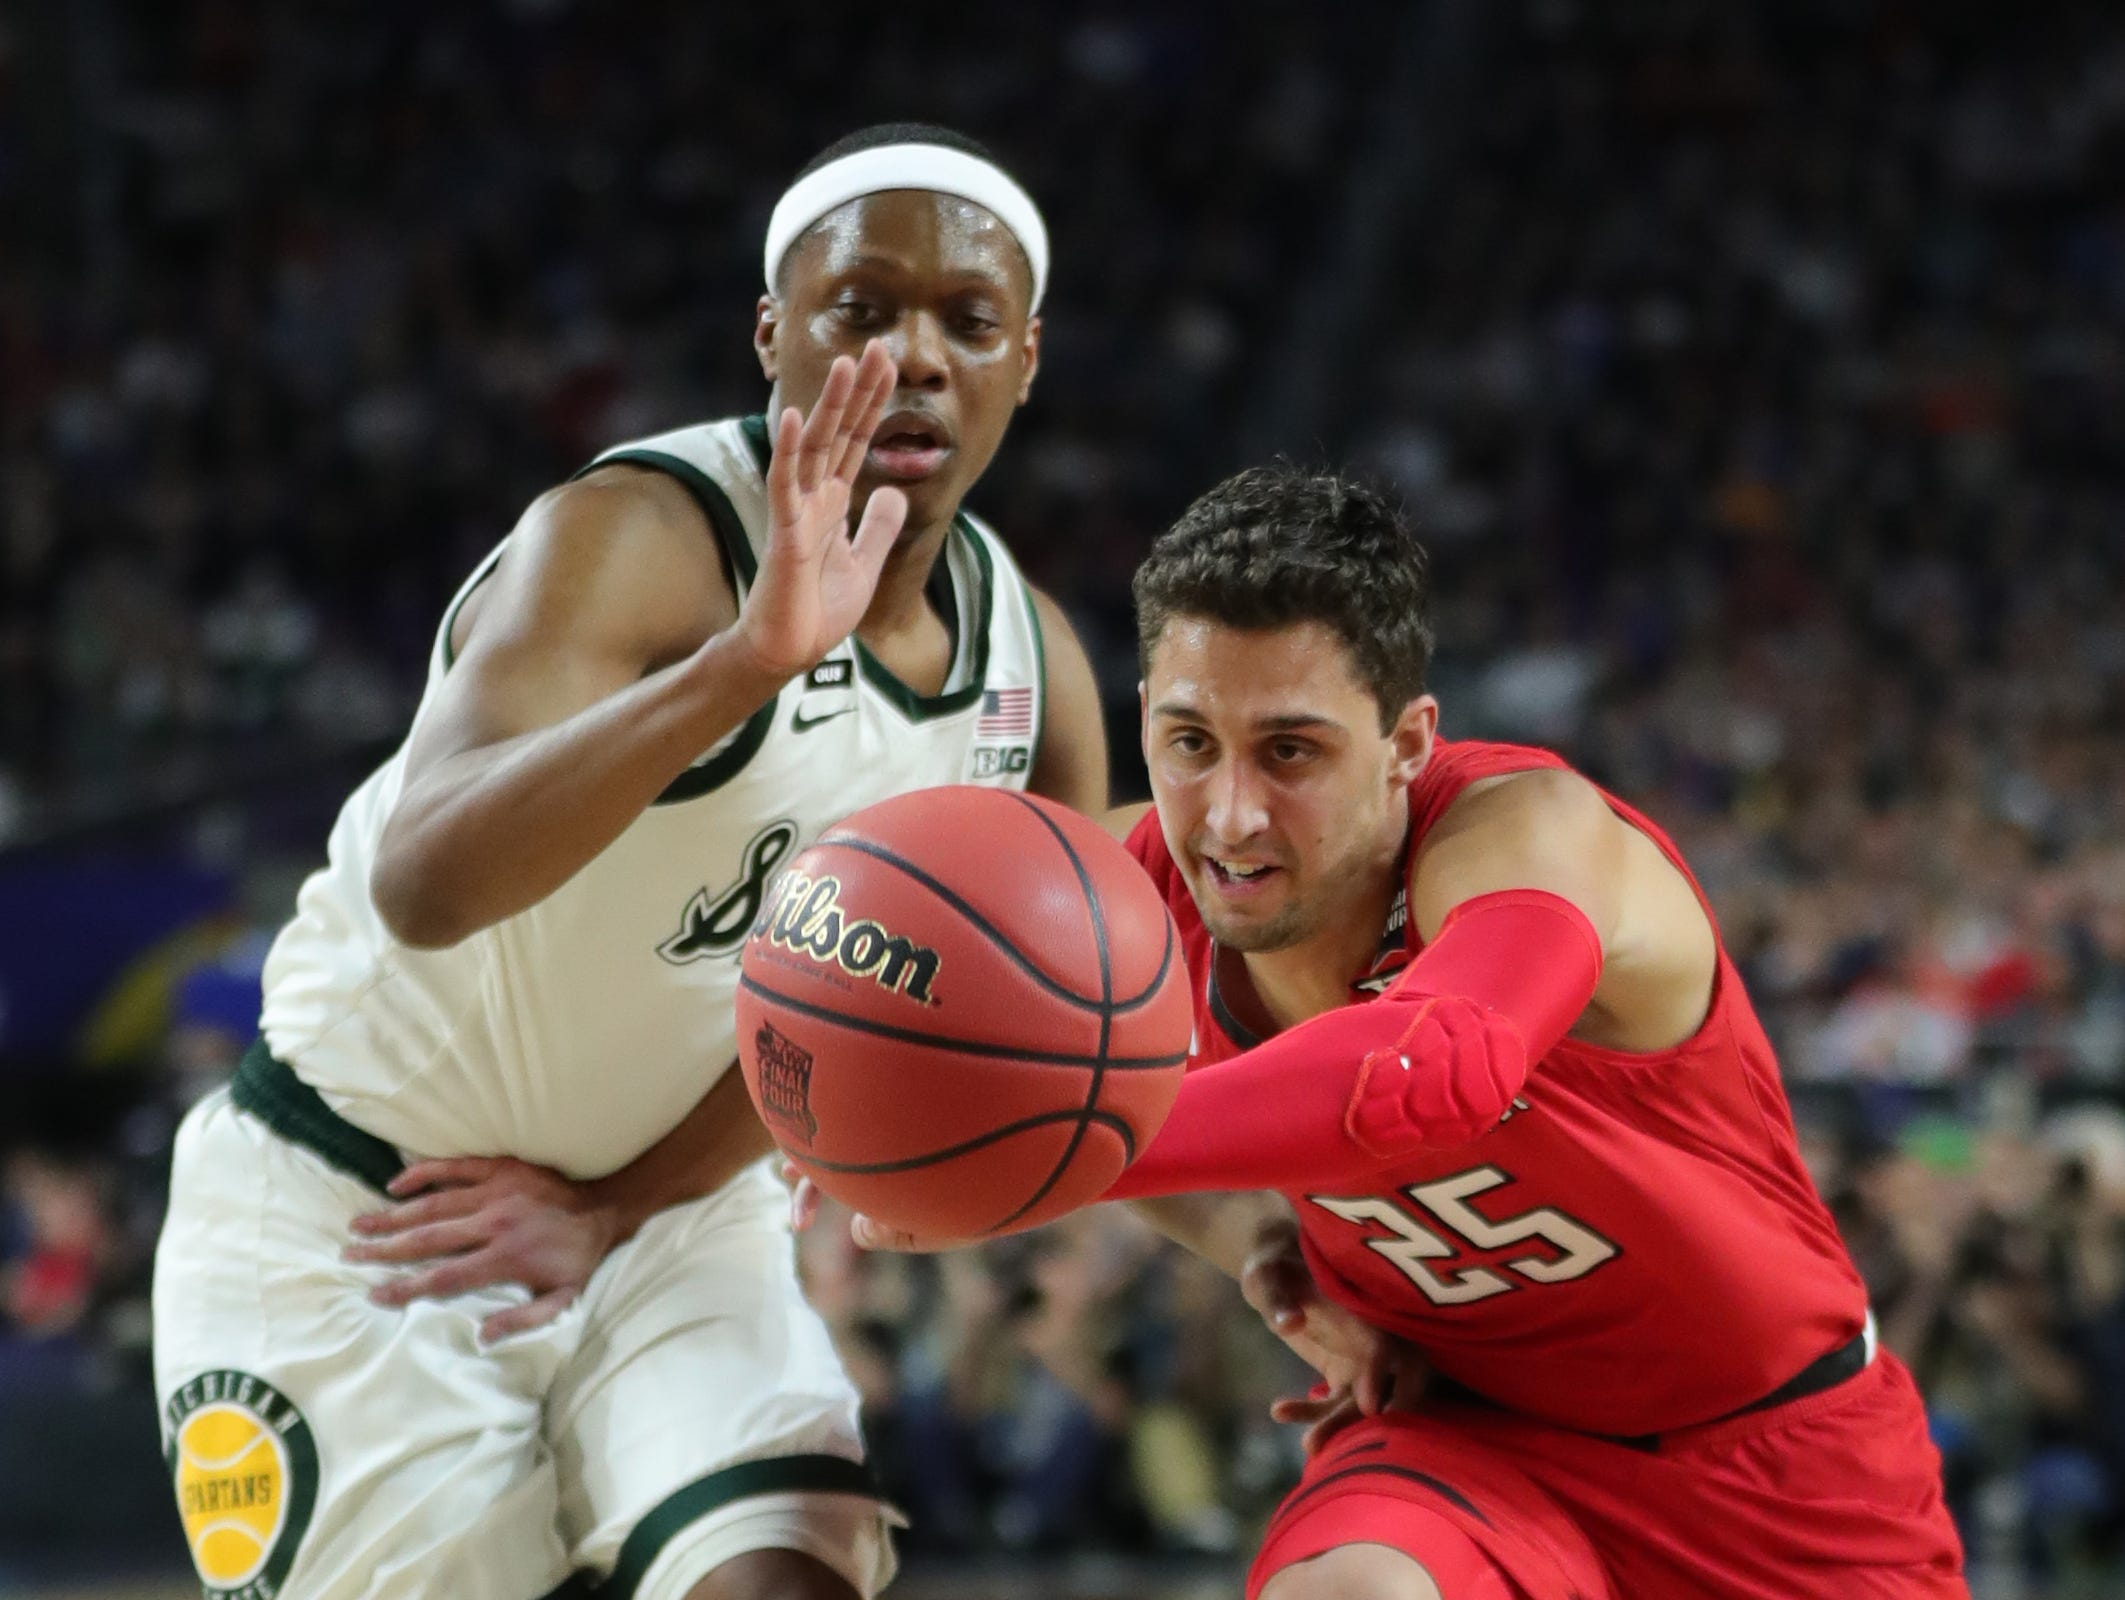 Michigan State guard Cassius Winston (5) and guard Davide Moretti (25) run down the ball in the first half of their Final Four game at U.S. Bank Stadium in Minneapolis, Minnesota on Saturday, April 06, 2019.